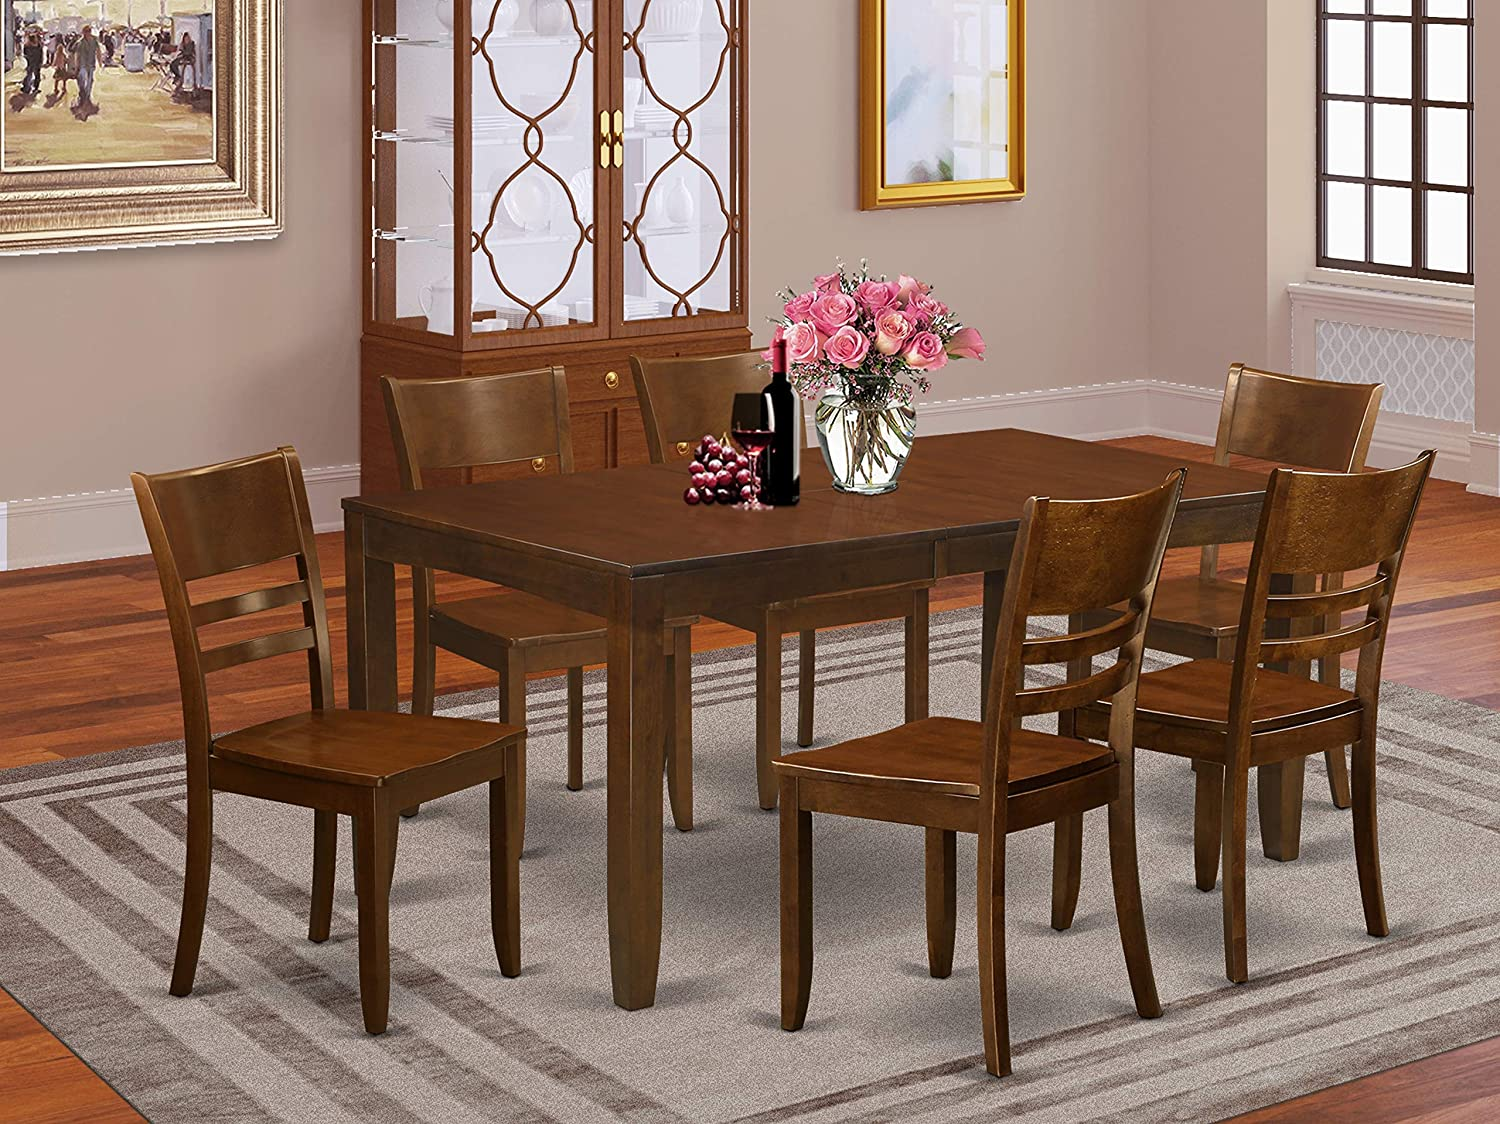 Amazon Com 7 Pc Dining Room Set Kitchen Tables With Leaf And 6 Kitchen Dining Chairs Furniture Decor